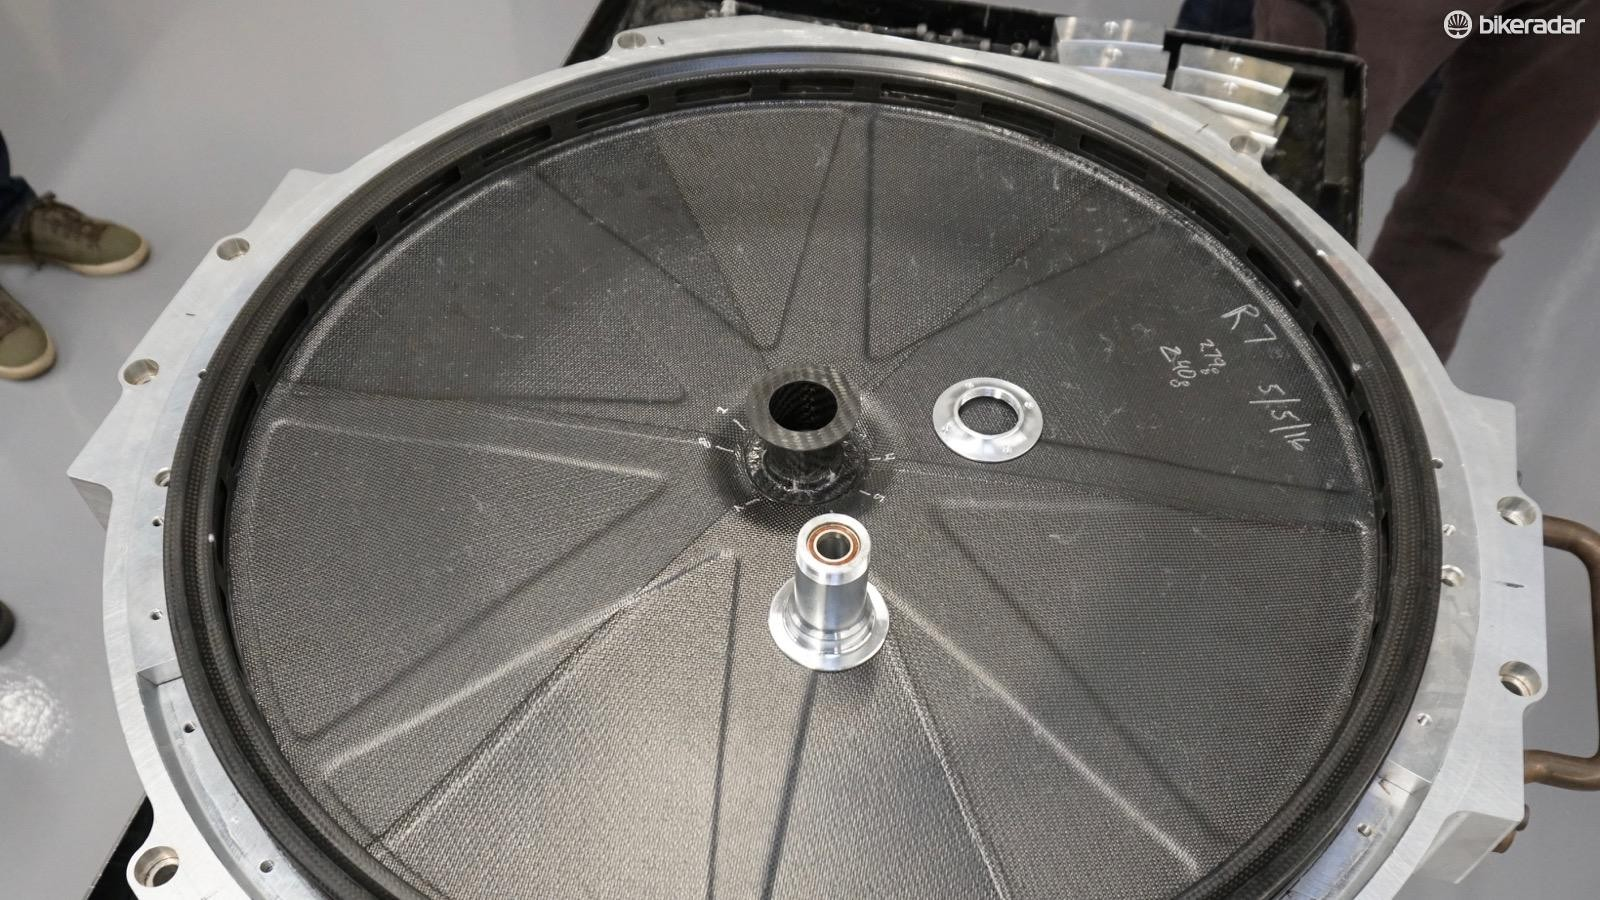 Specialized designed all the tooling for the 321 Disc in house